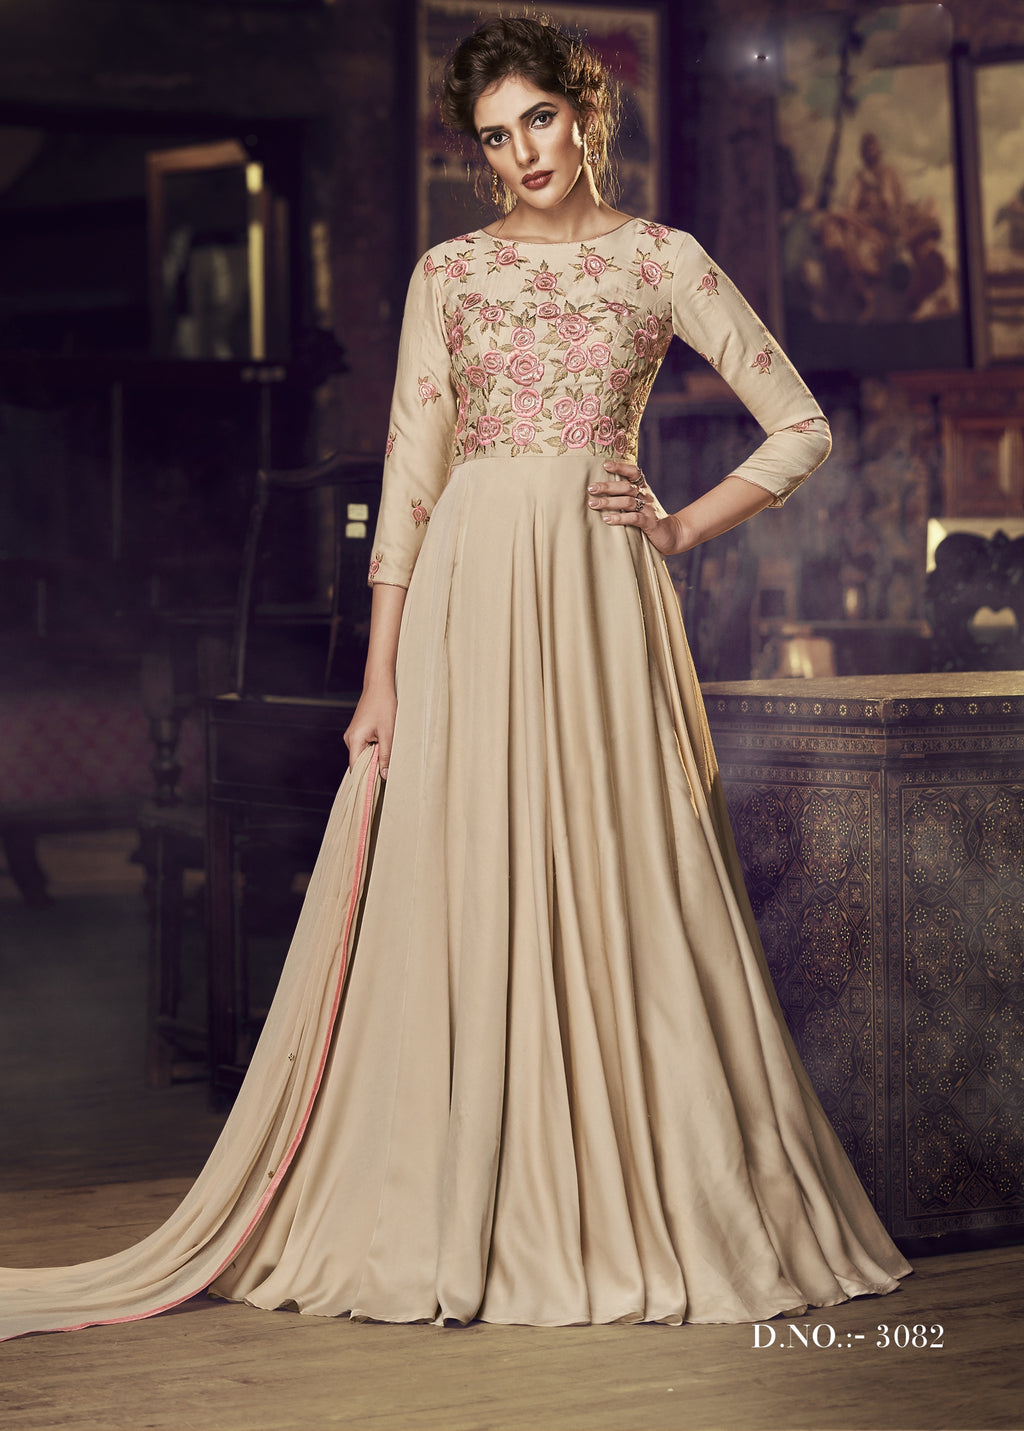 Chikoo Satin Modal Embroidered Designer Indian Party Dresses